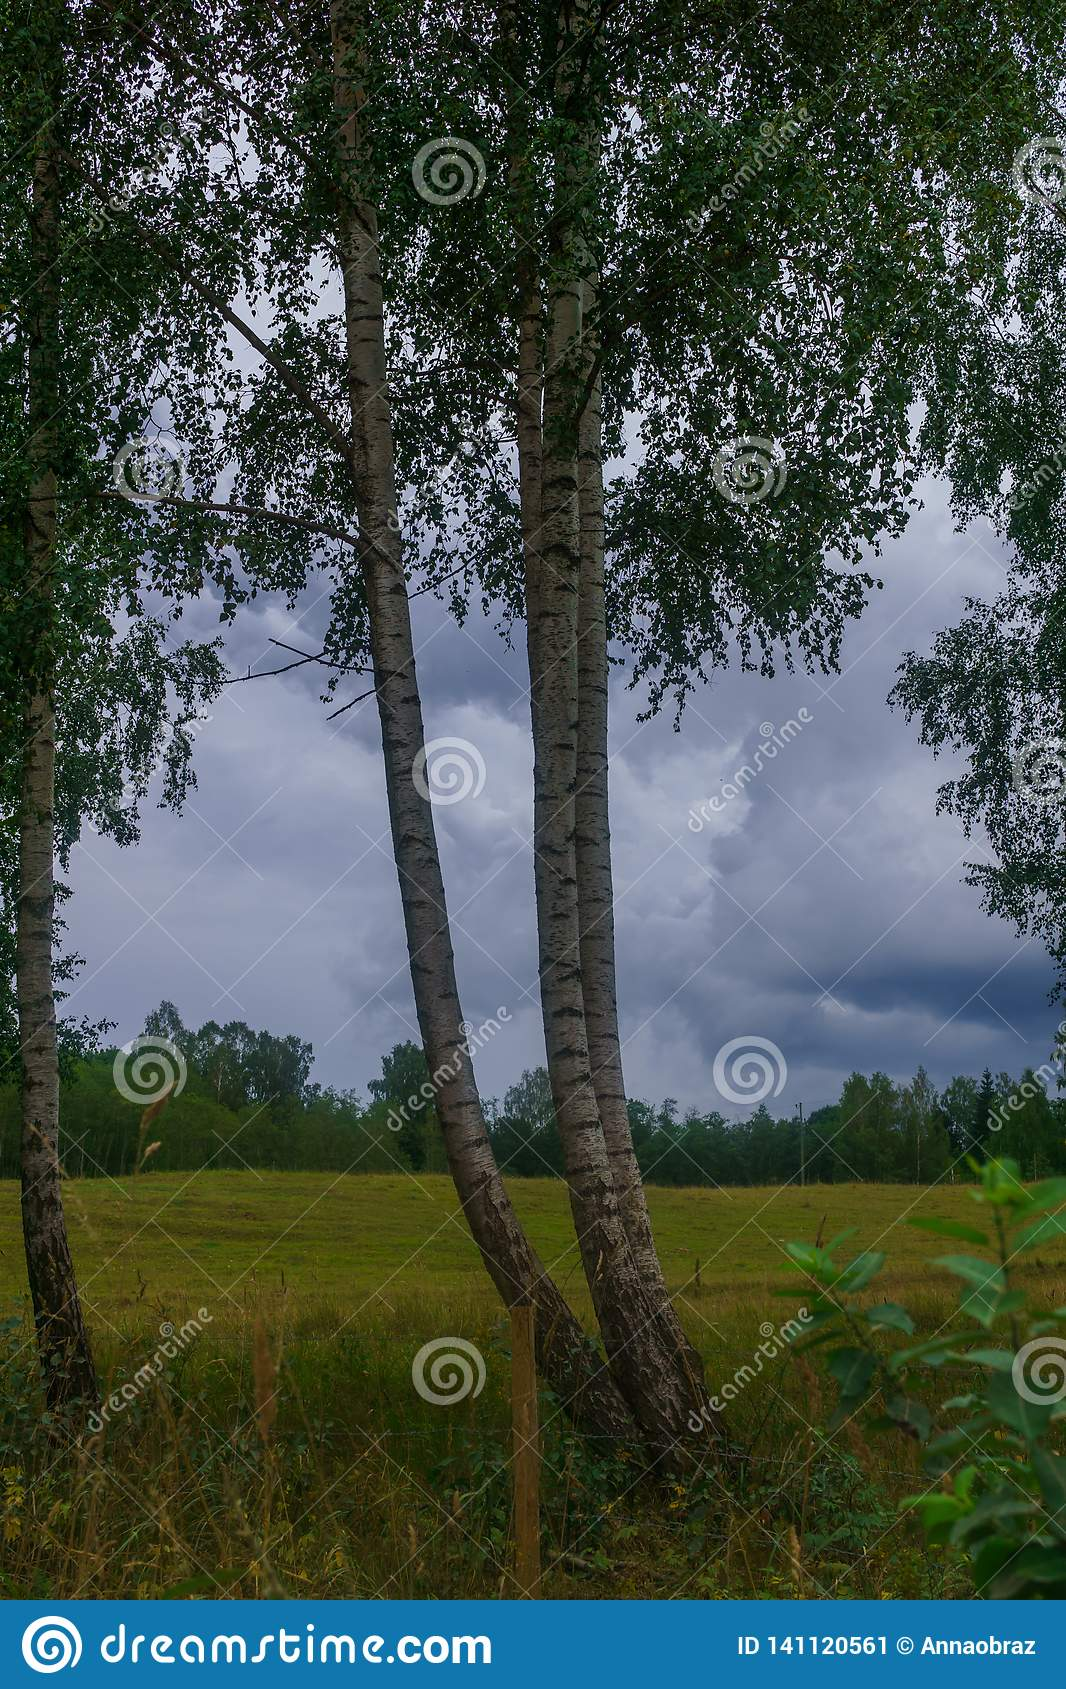 Birches on the edge of the field in the village. The photo was taken in Latvia